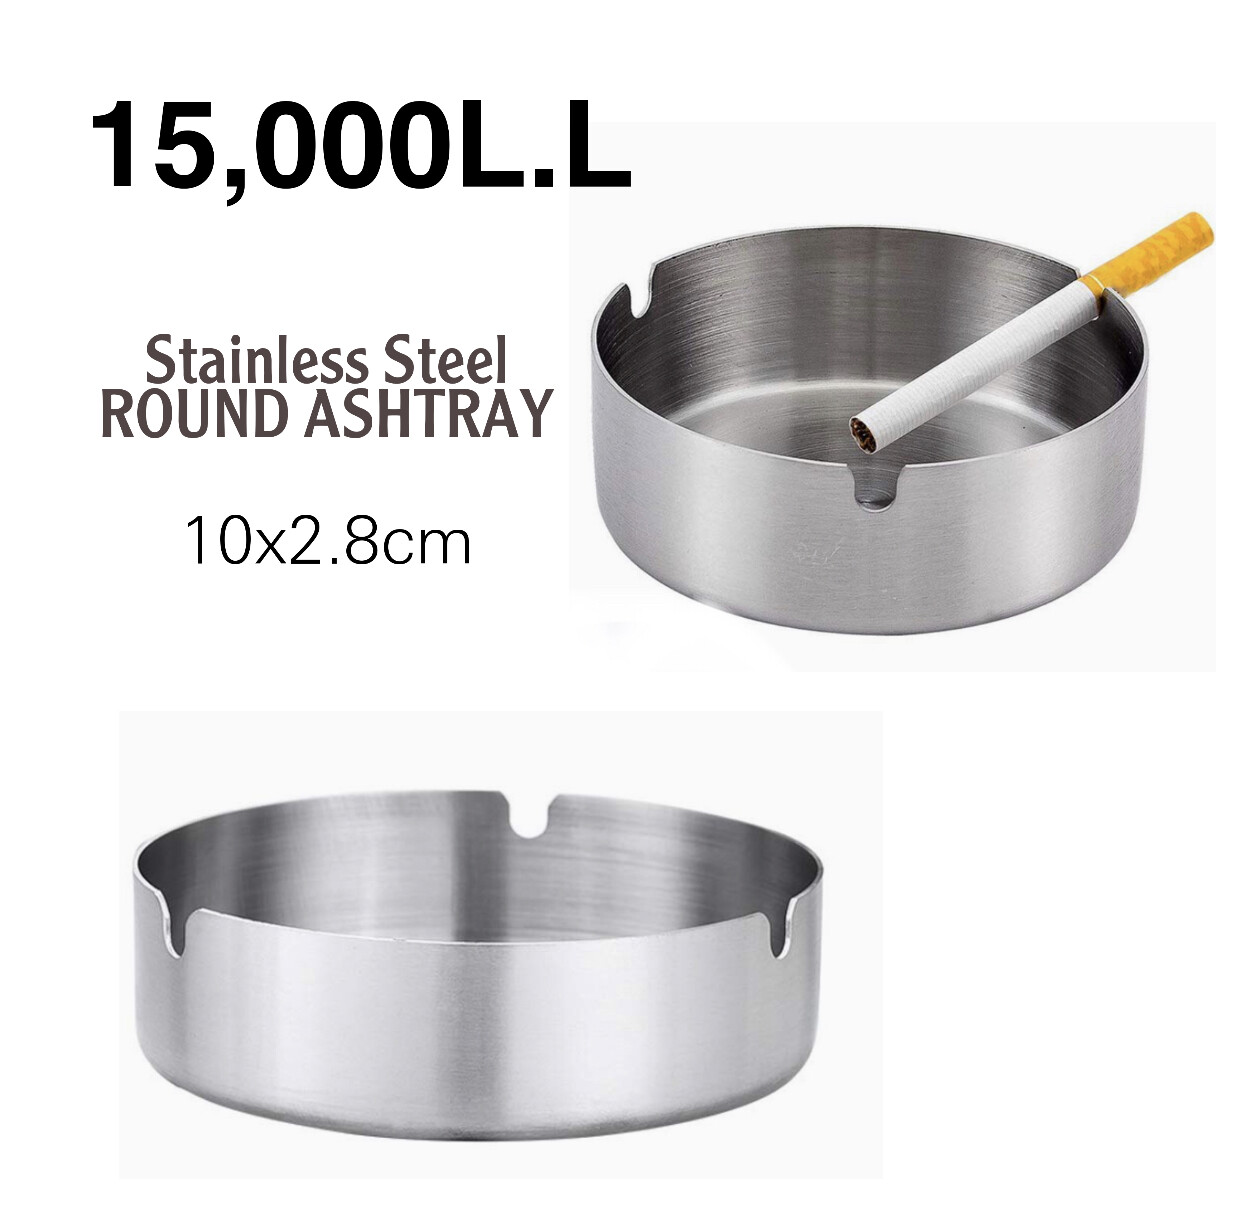 Round Heavy Ashtray